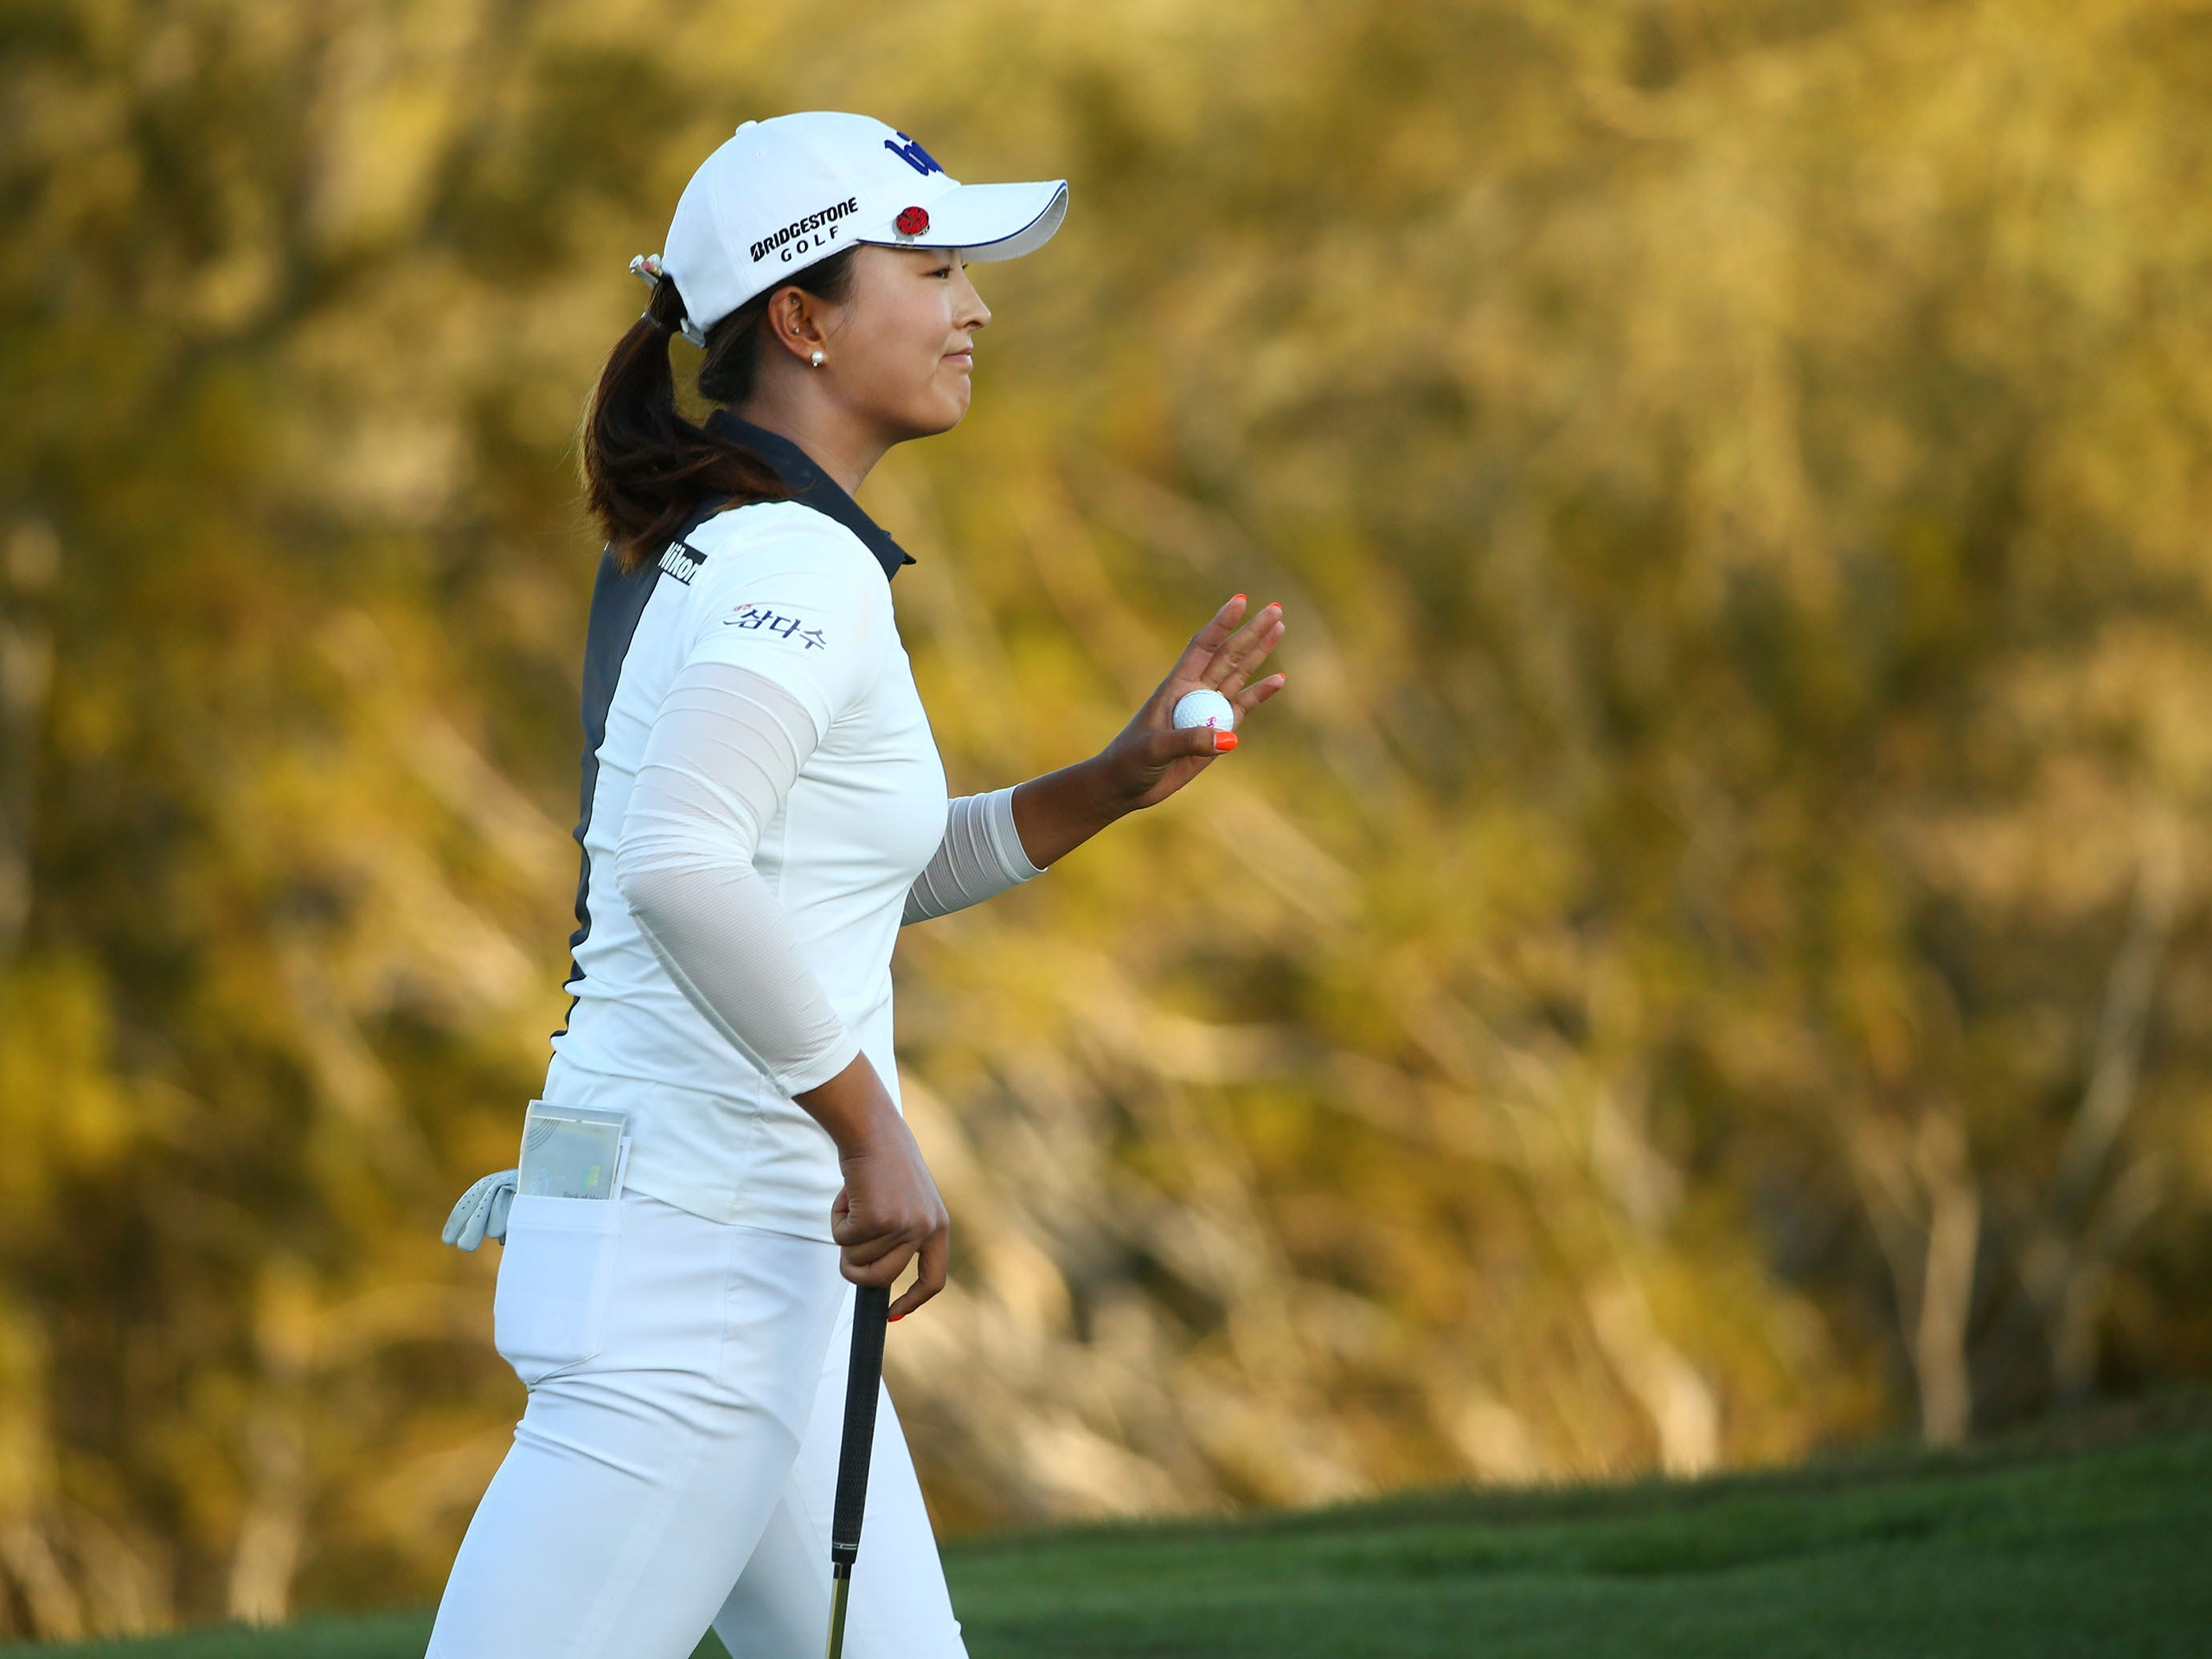 Jin Young Ko of South Korea waves to the crowd after finishing her final round at the Bank of Hope Founders Cup on Mar. 24, 2019 at Wildfire Golf Club at JW Marriott in Phoenix, Ariz.